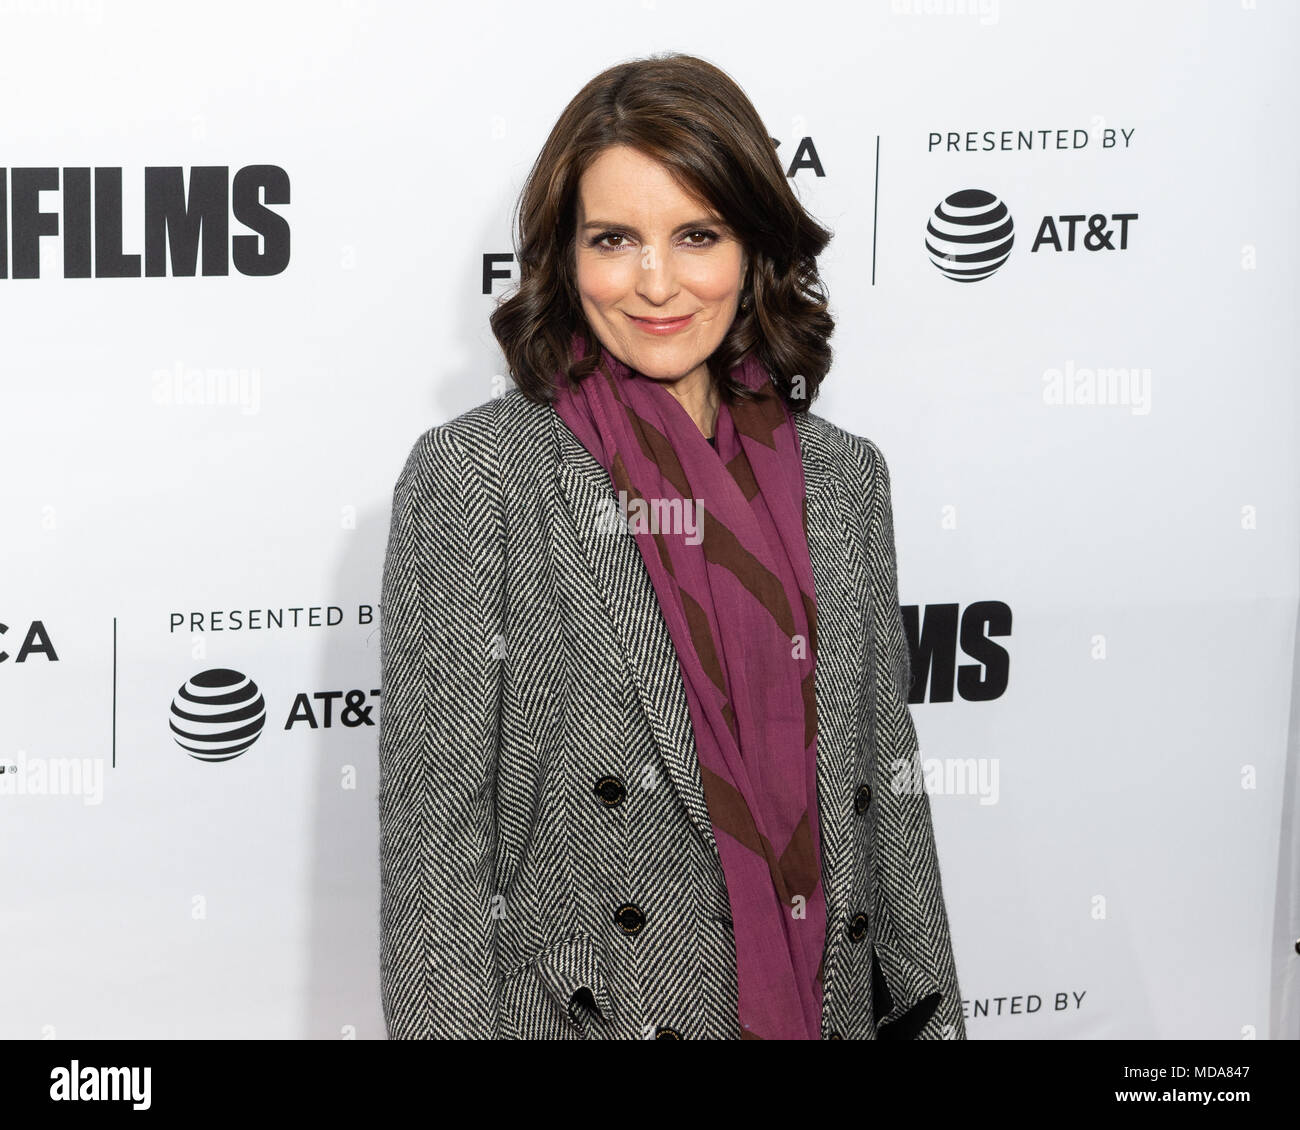 Pictures Of Tina Fey Jeff Richmond Anne Hathaway And: Gilda Live Stock Photos & Gilda Live Stock Images